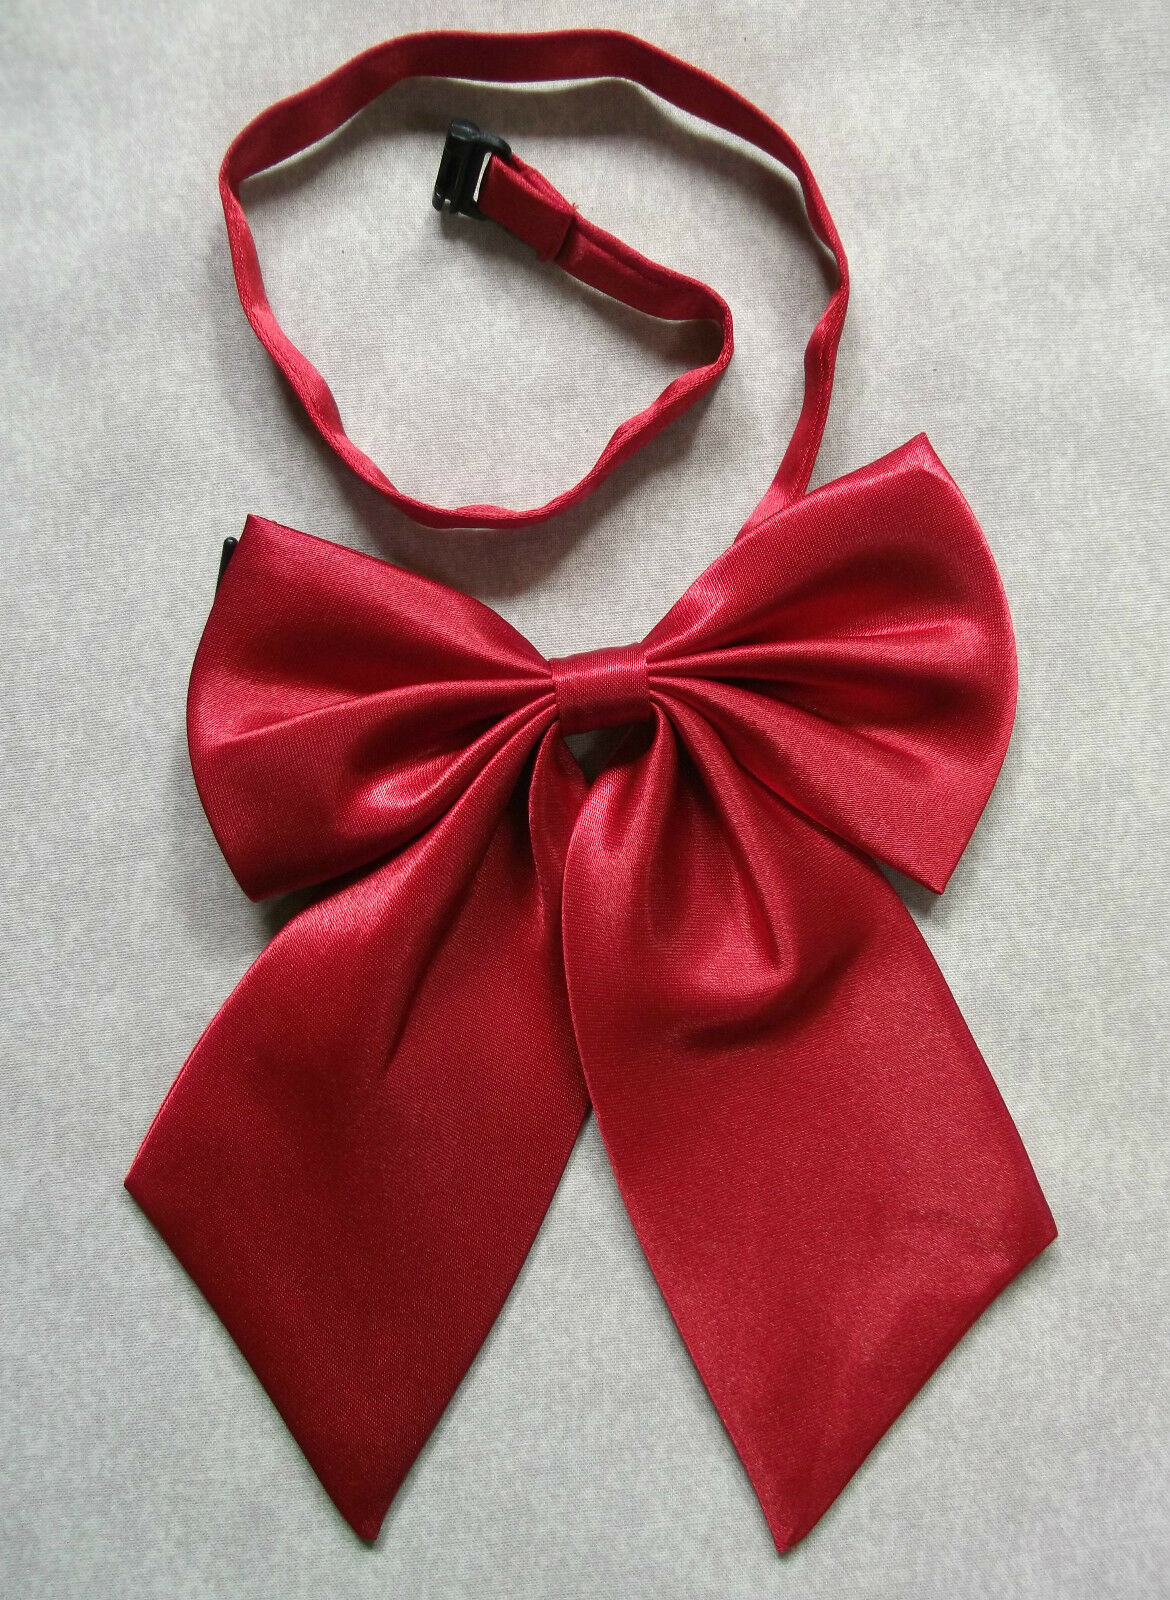 Pussy Bow Tie Retro Womens 198s Style Punk Butterfly Red NEW-show original title